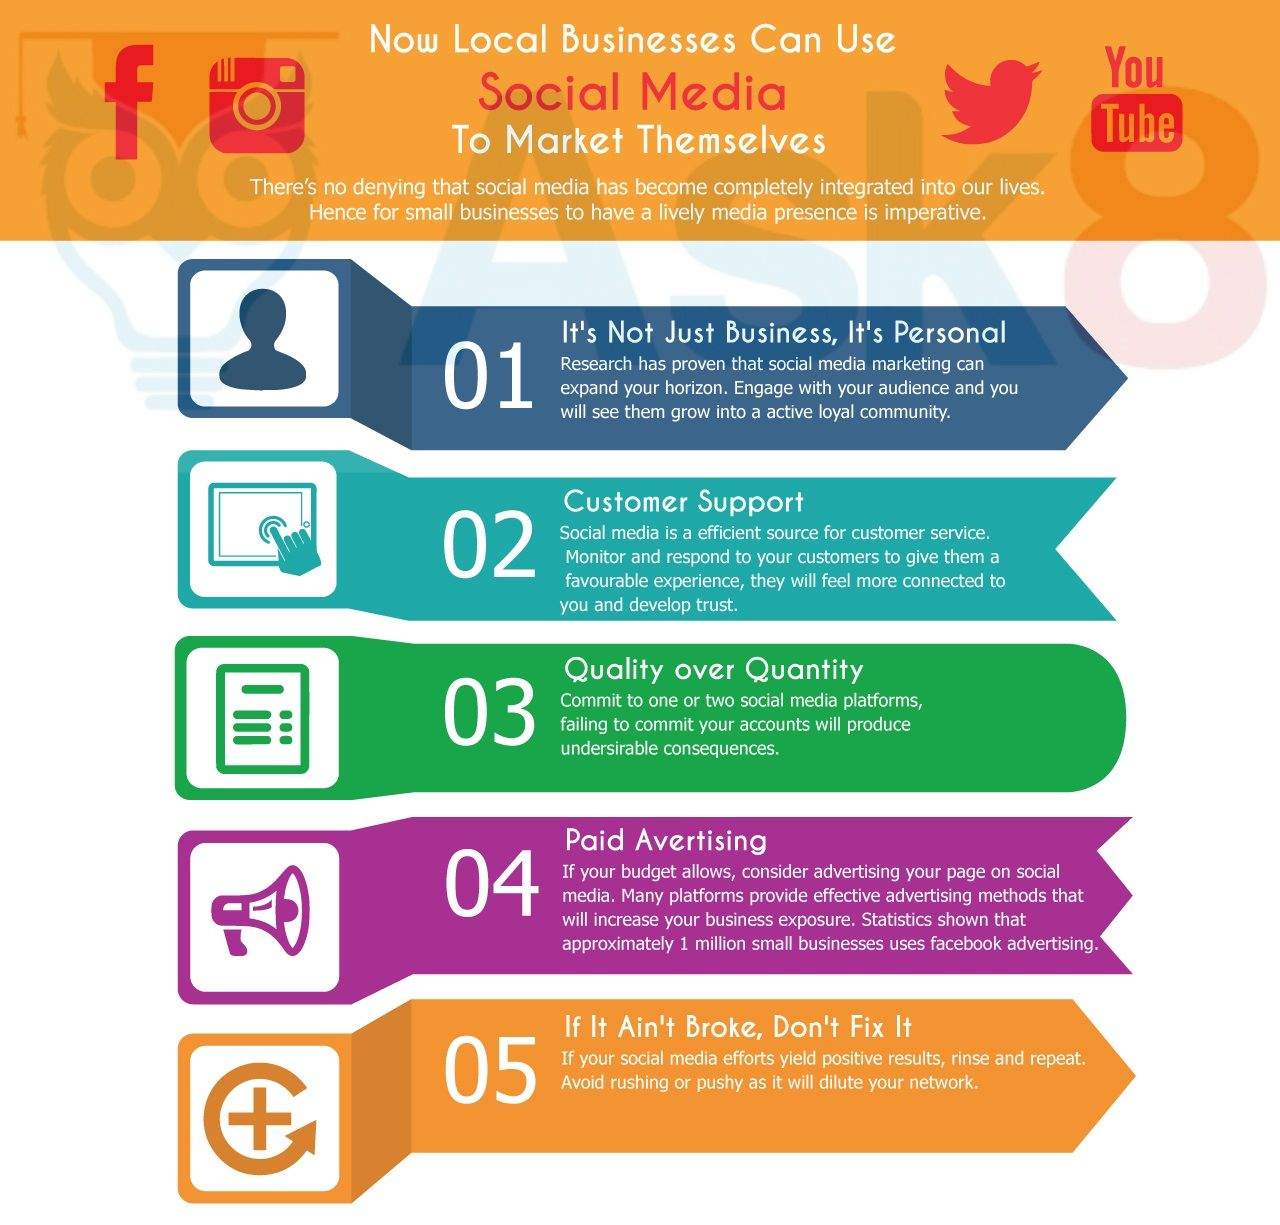 Social Media Can Be An Excellent Platform For Small Businesses And It Helps Grow Over The Digital Marketing Agency Digital Marketing Services Best Seo Services